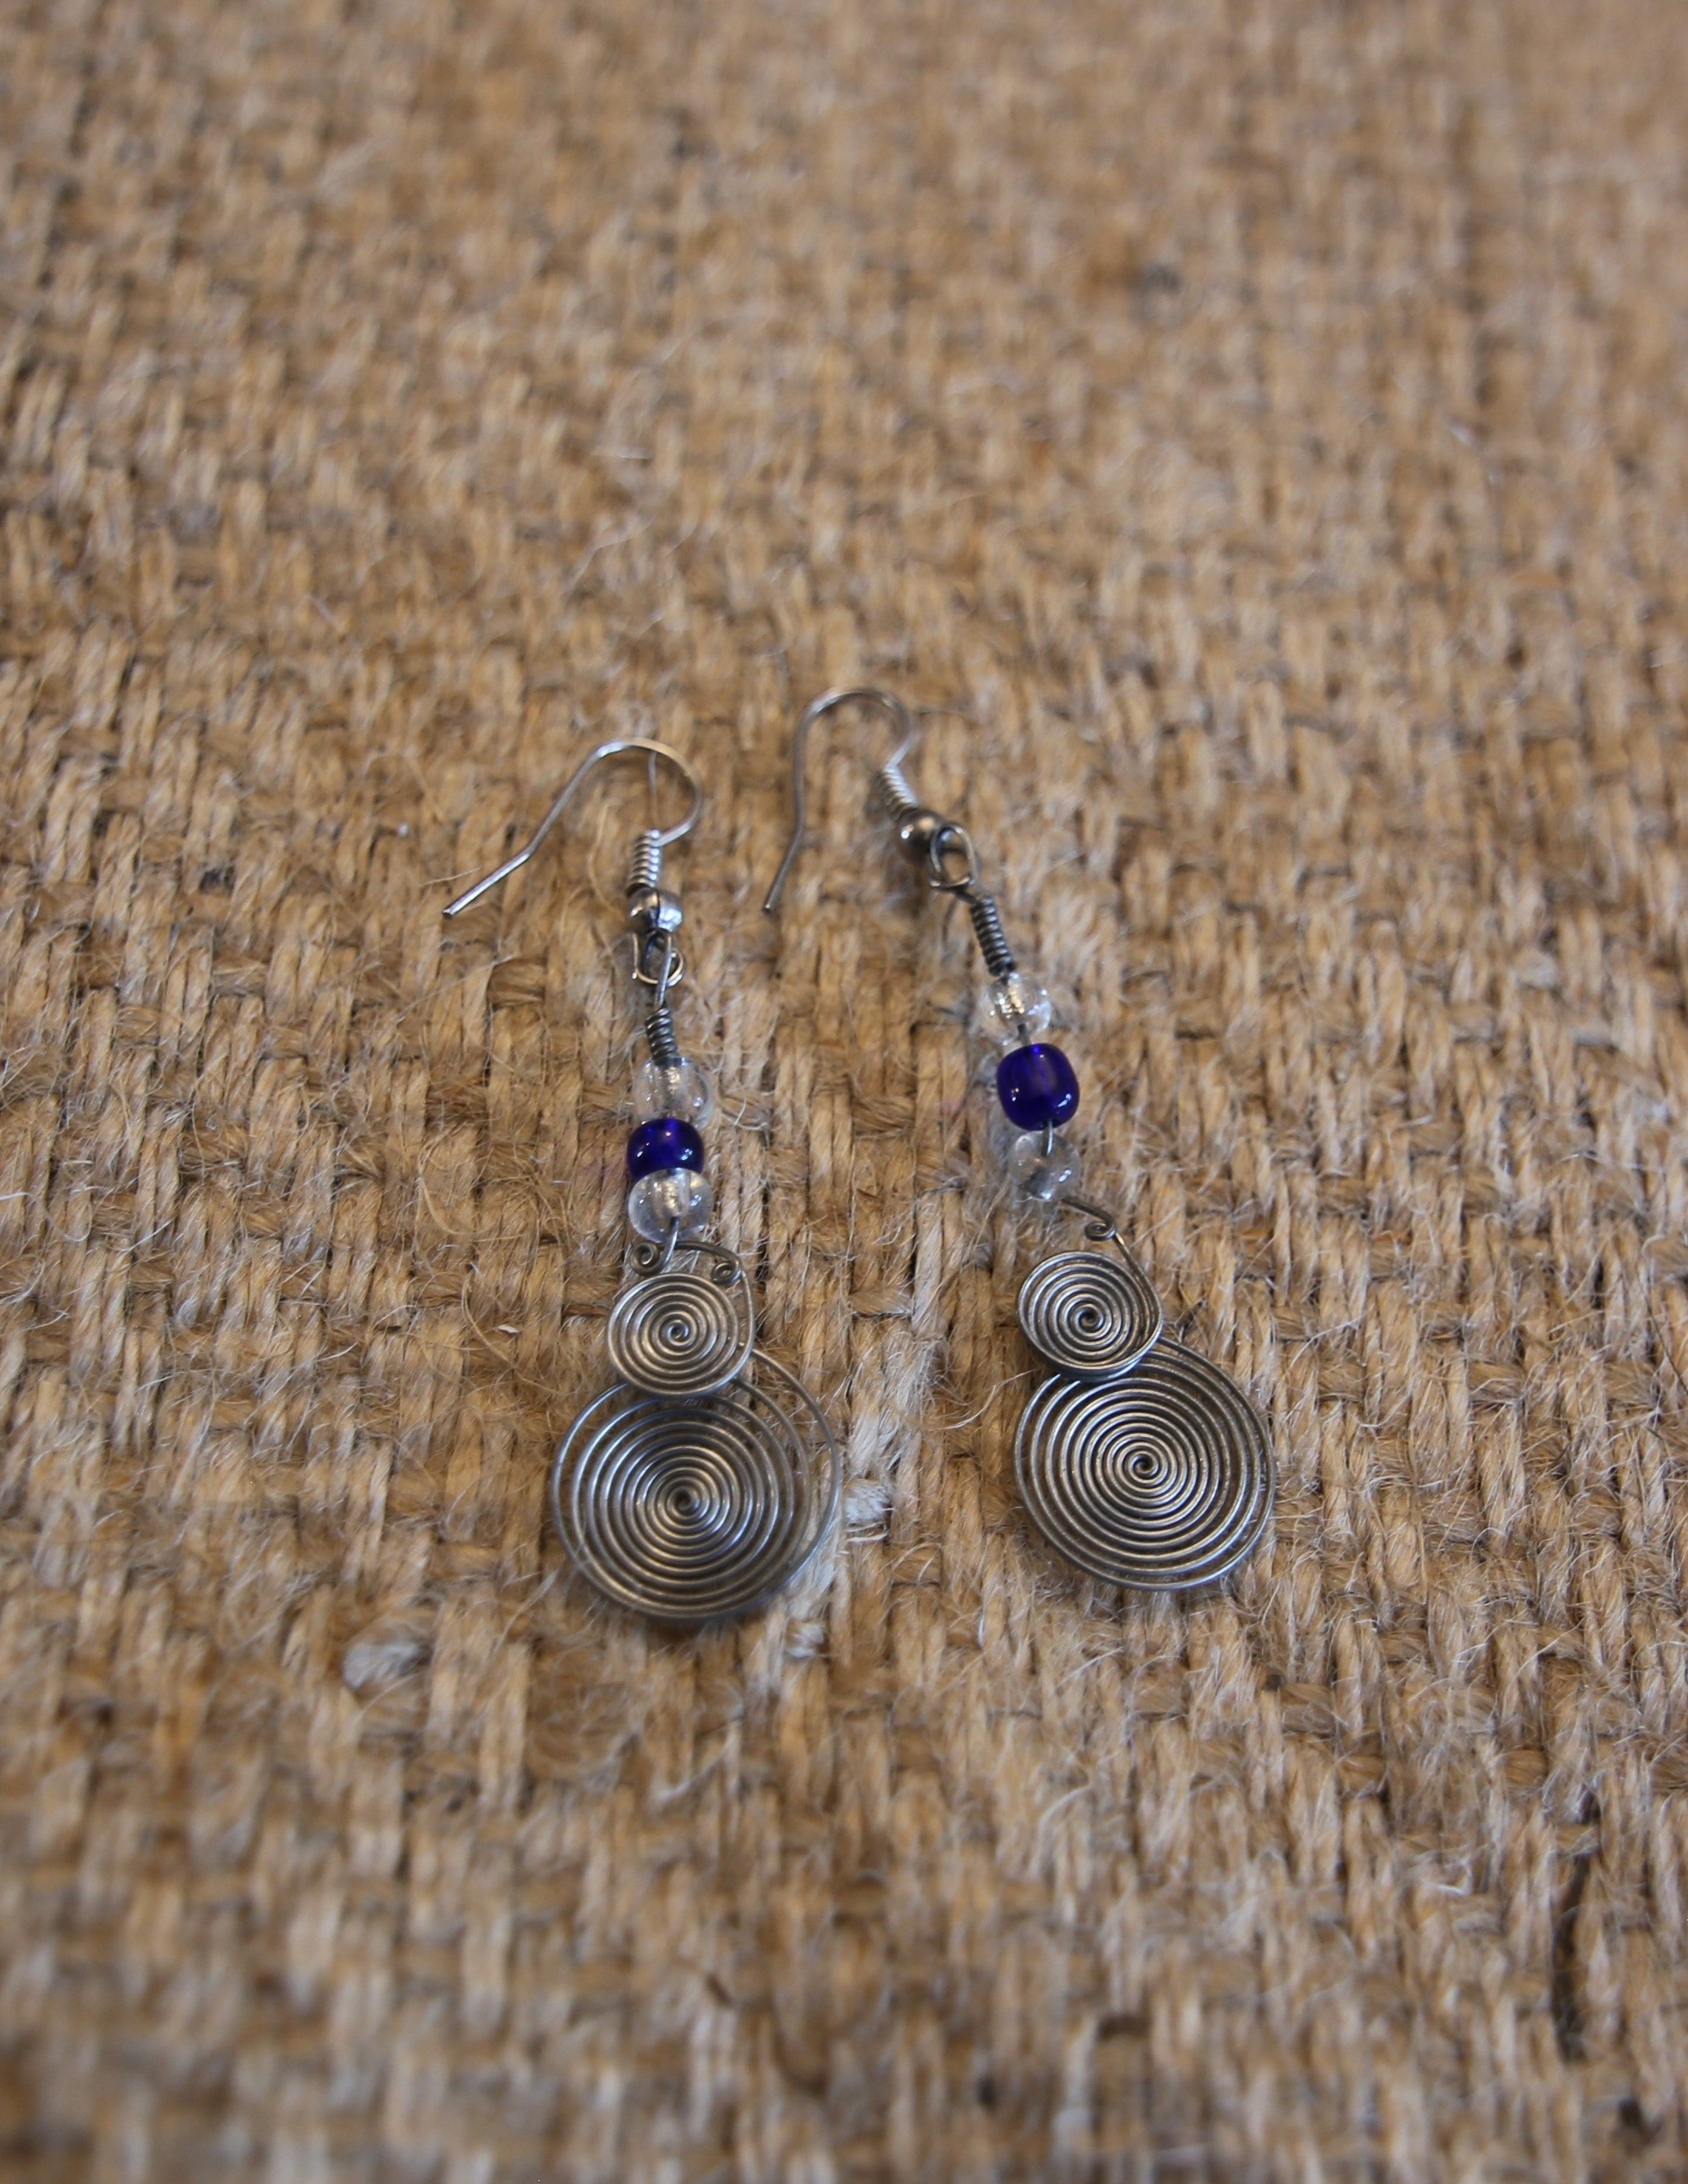 Hand wound metal ear rings with beads